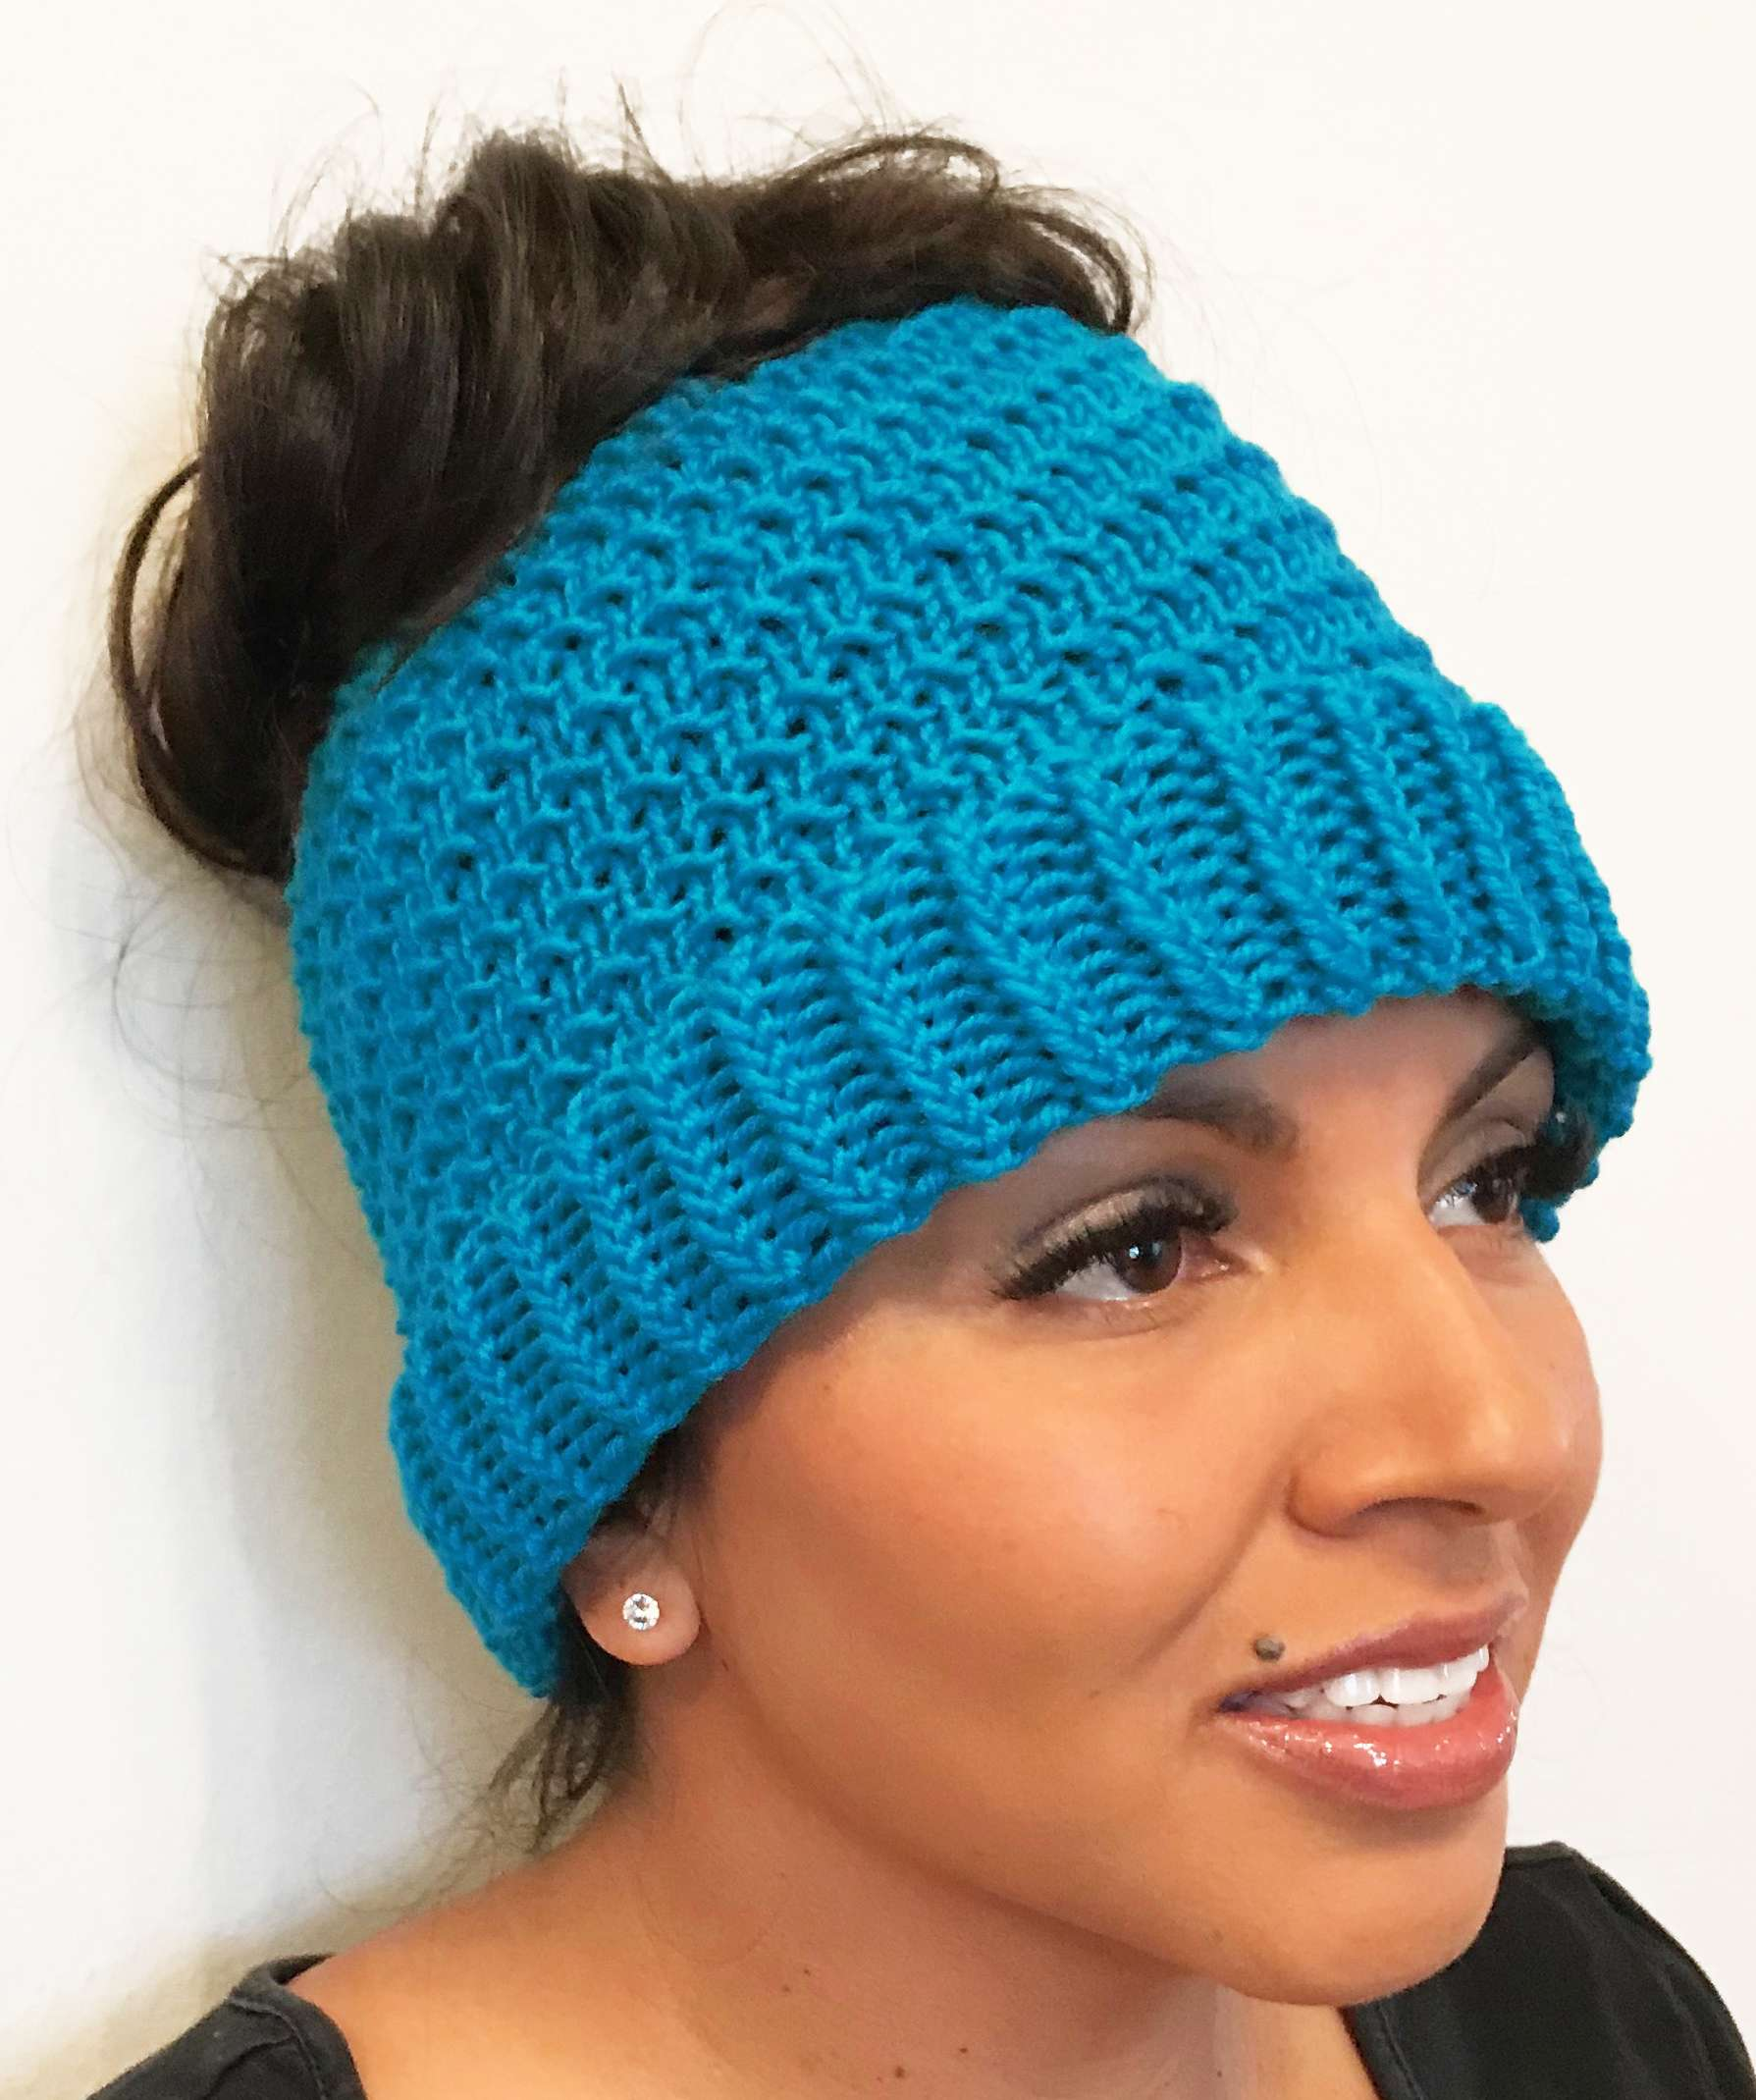 ddf9524b1f1 Aria Messy Bun Beanie. Let s start the year off by going back to basics  with a twist! This beanie incorporates the ewrap knit stitch